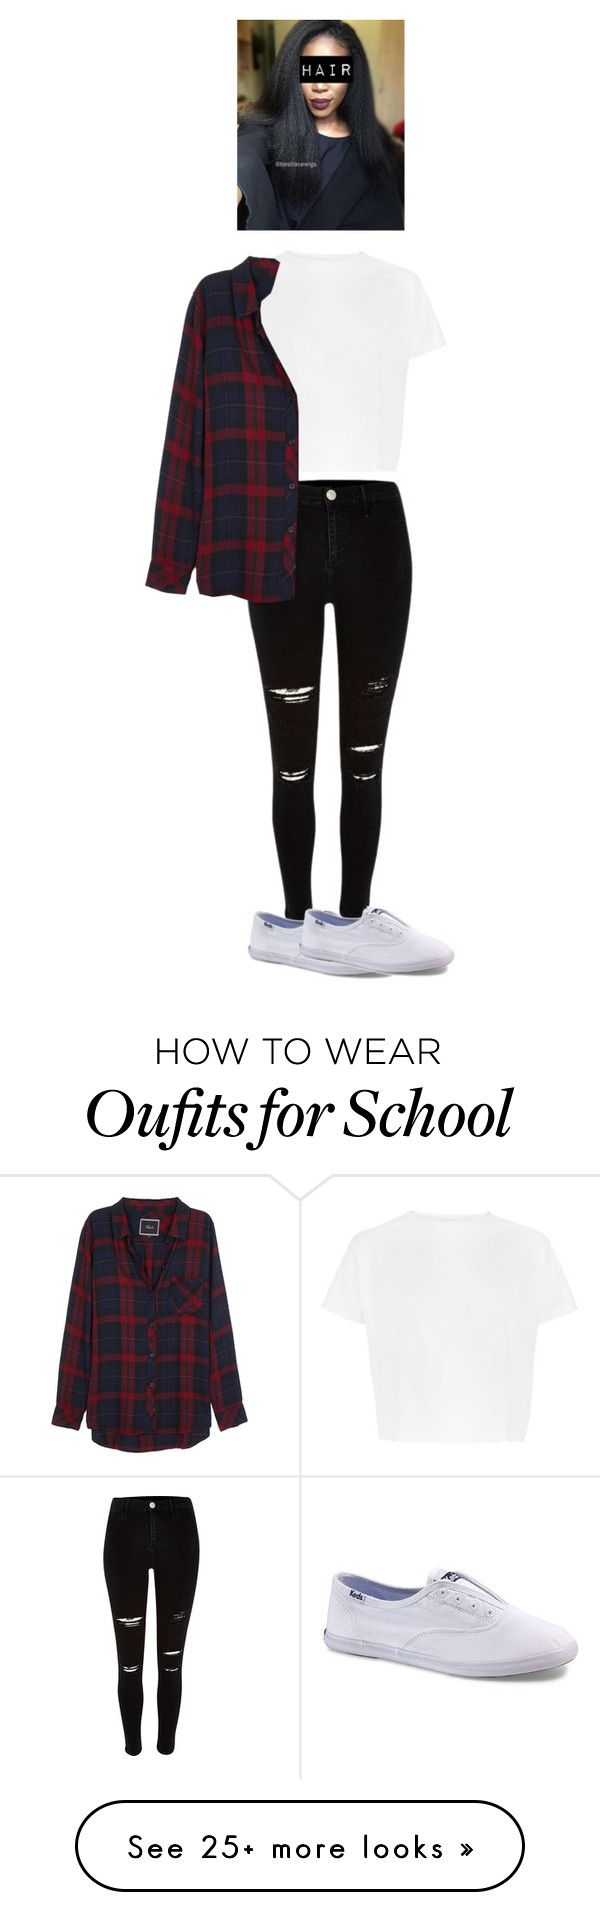 """outfit for school trip"" by bandssaveme1 on Polyvore featuring River Island, Rails and Keds"